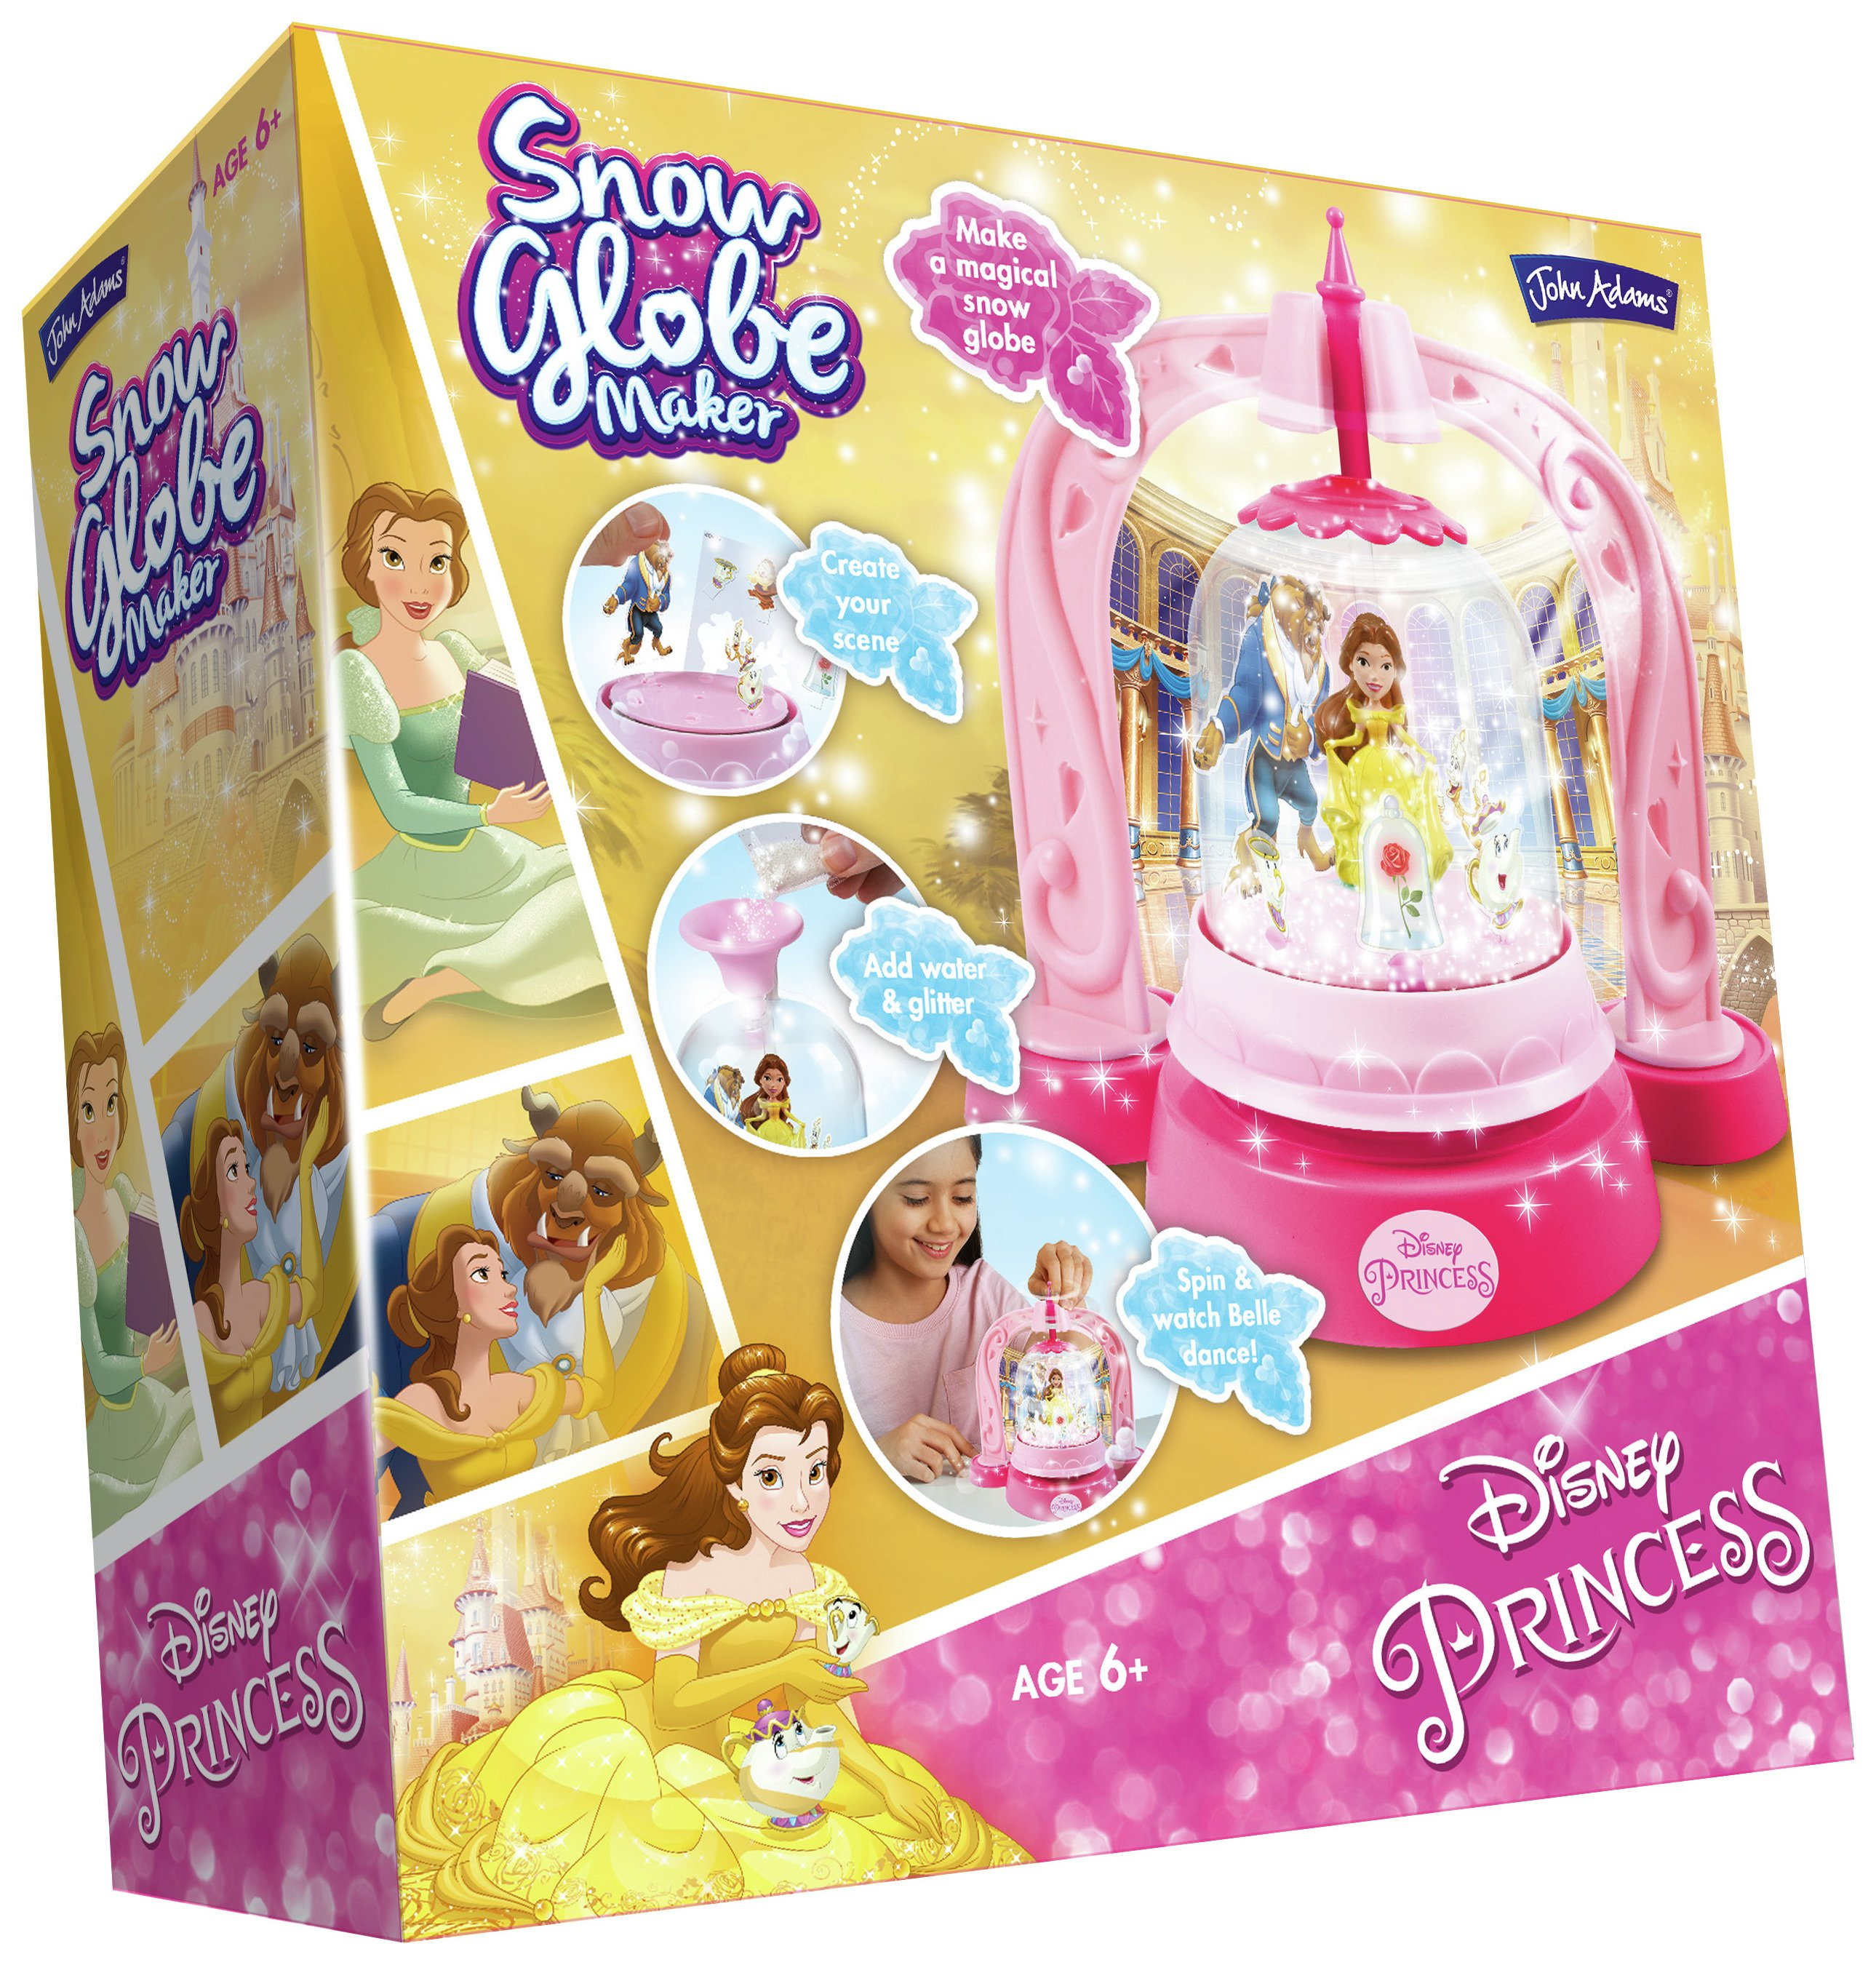 Image of Disney Princess Beauty and the Beast Snow Globe